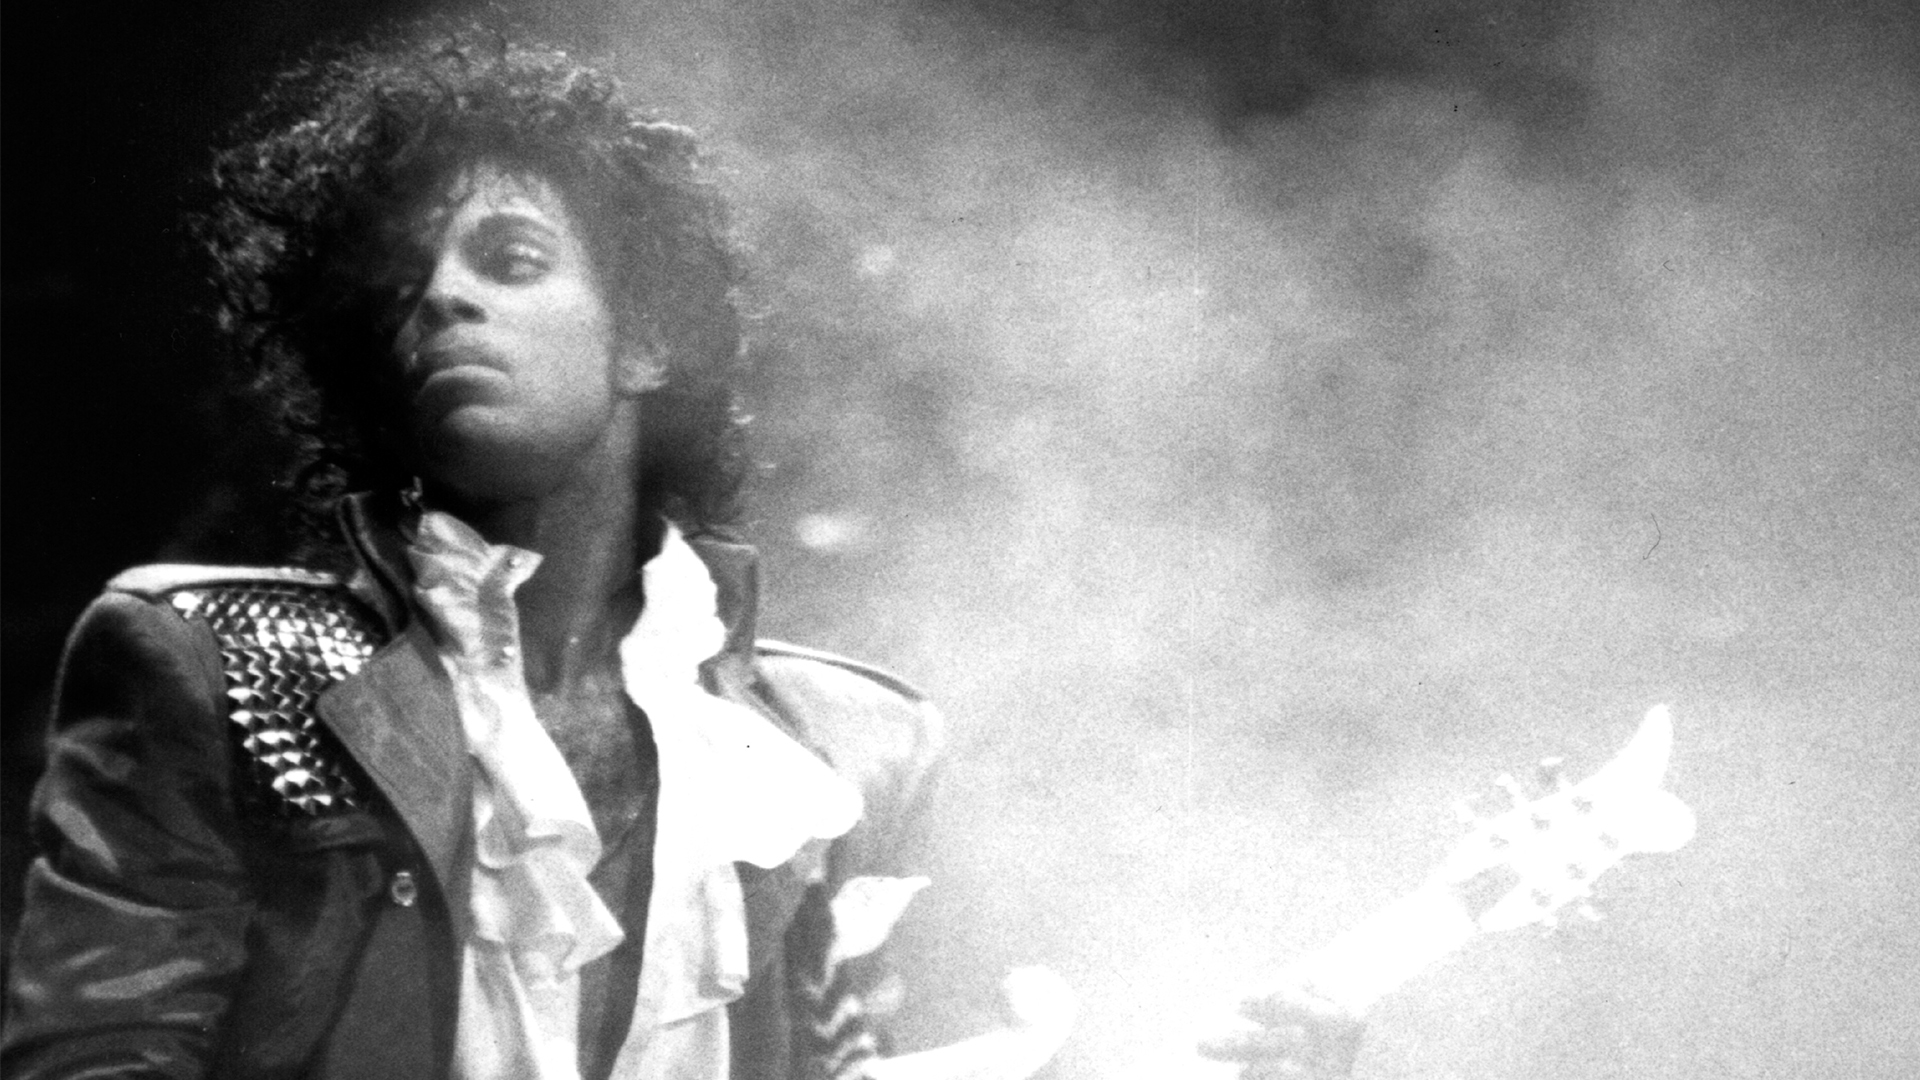 Secret Behind Prince and His Private Philanthropy Revealed